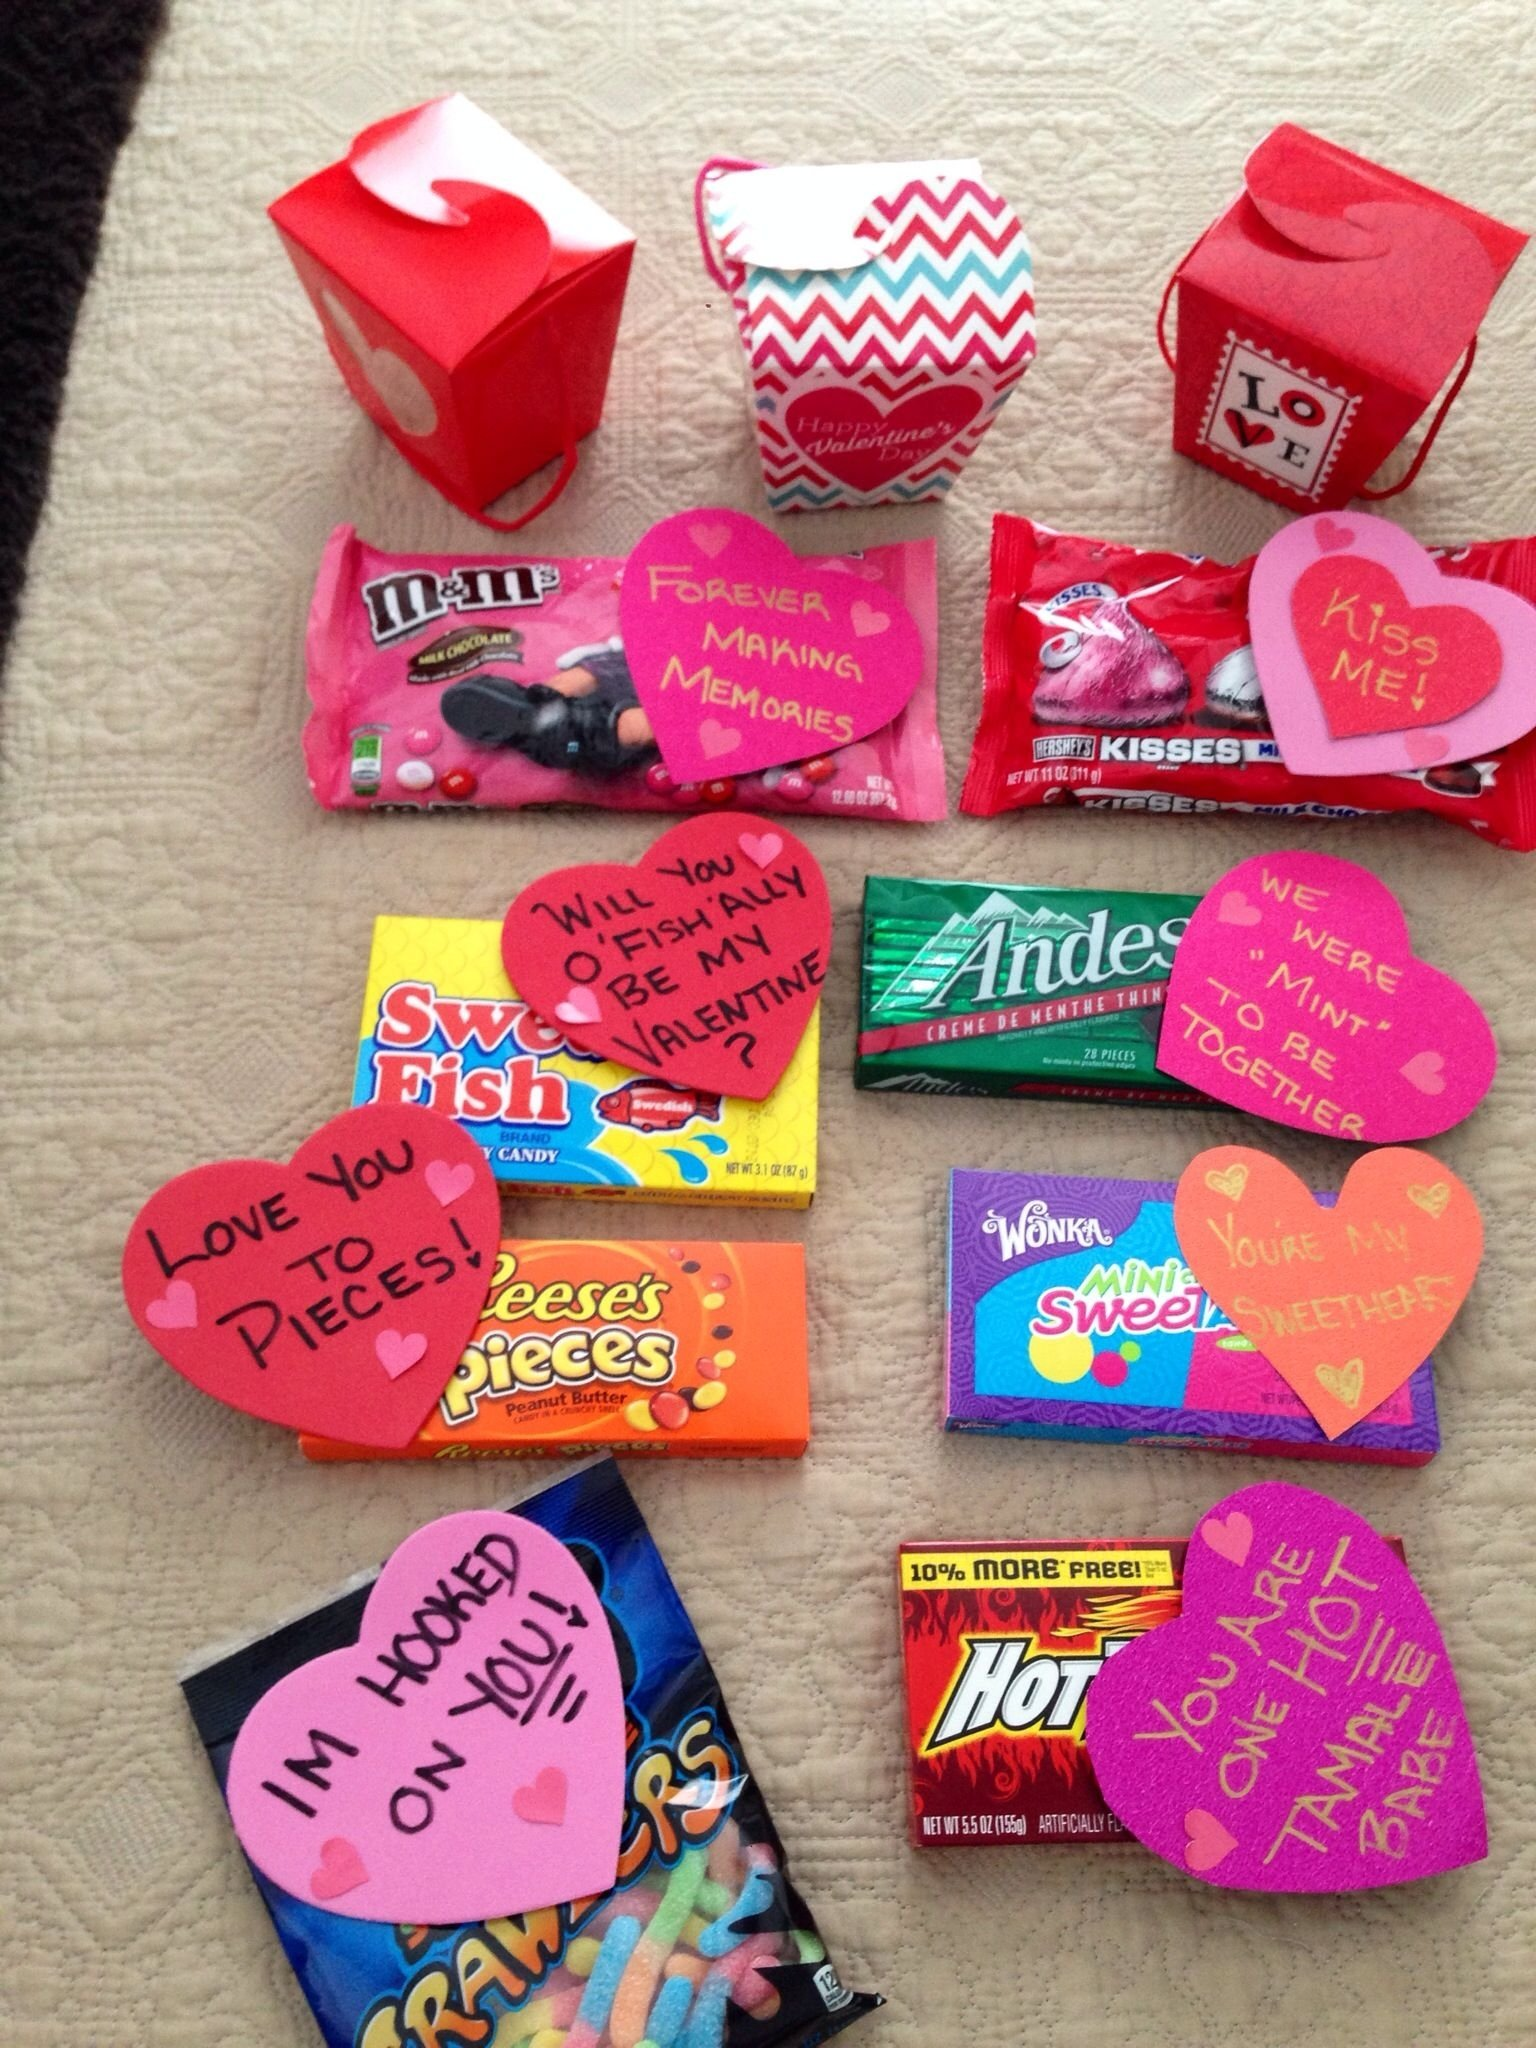 10 Stunning Valentines Day Care Package Ideas valentines day care package pinteres 1 2020